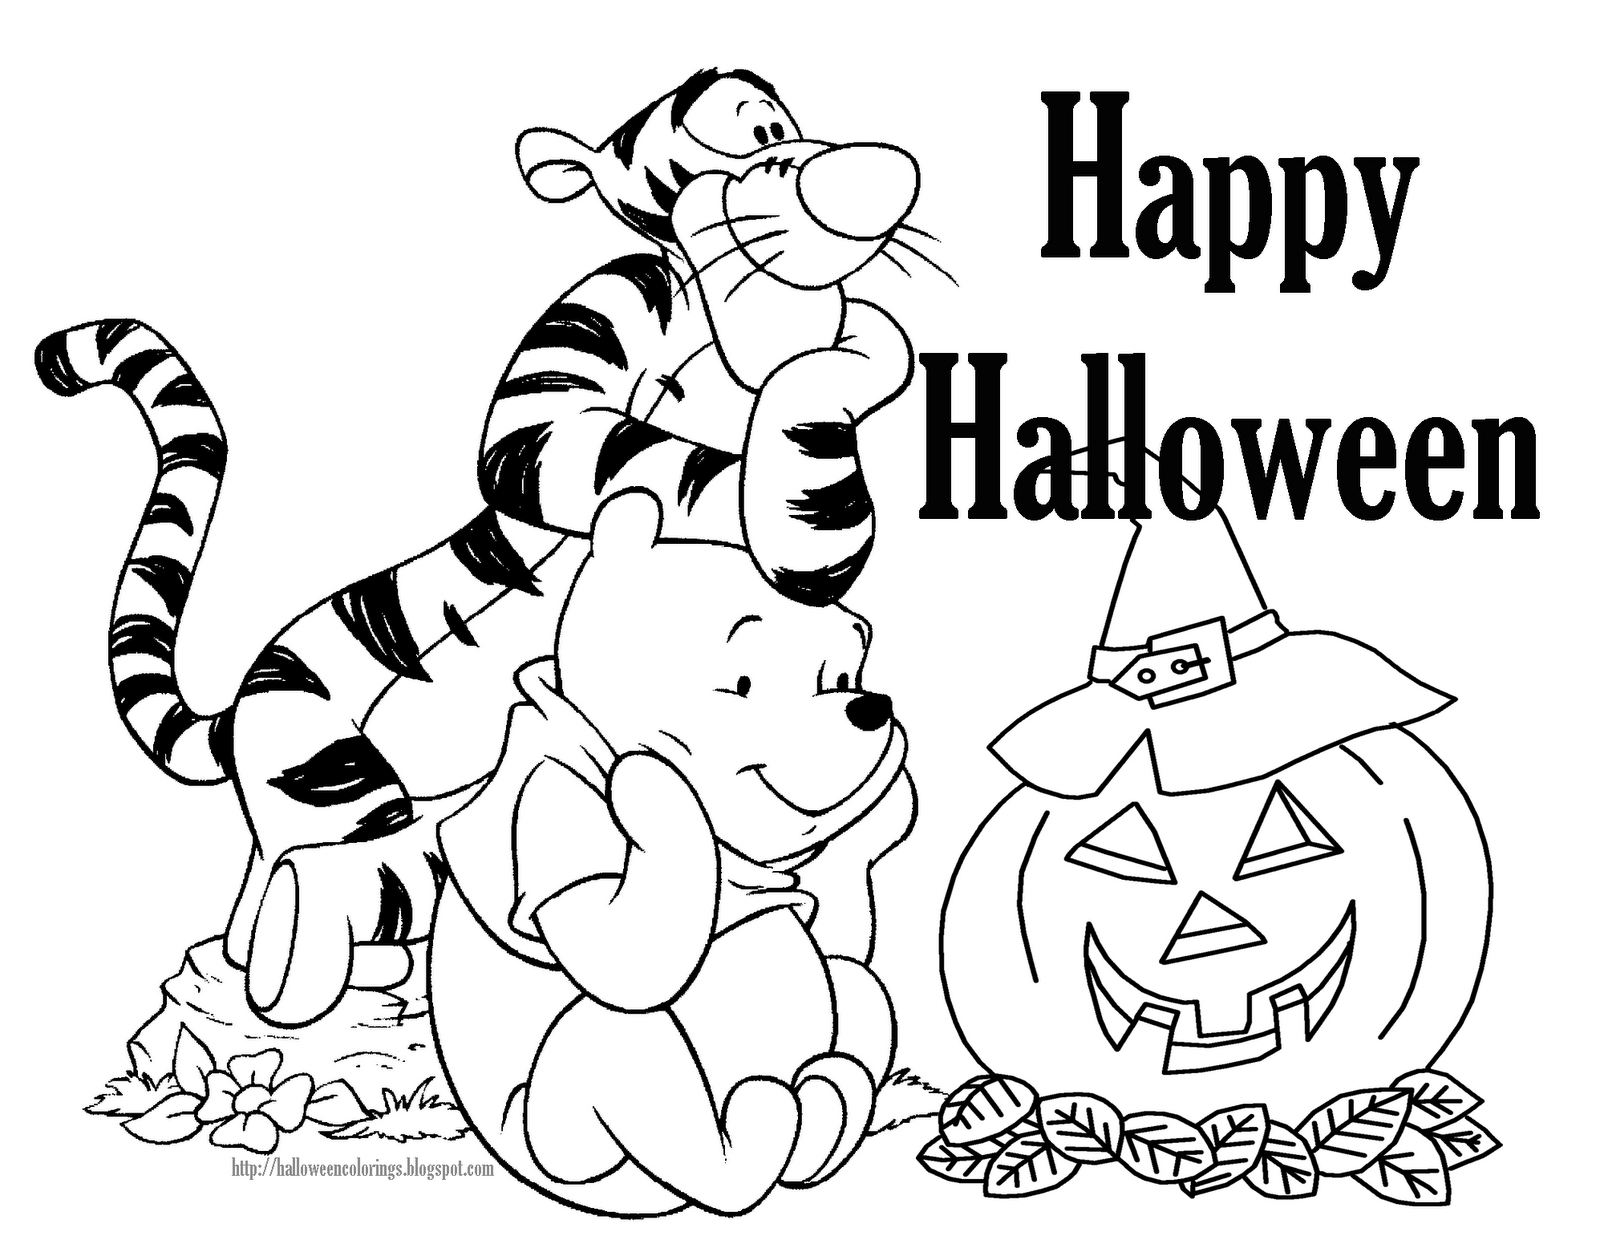 Disney halloween coloring book pages kids coloring pages for Disney coloring pages free printable